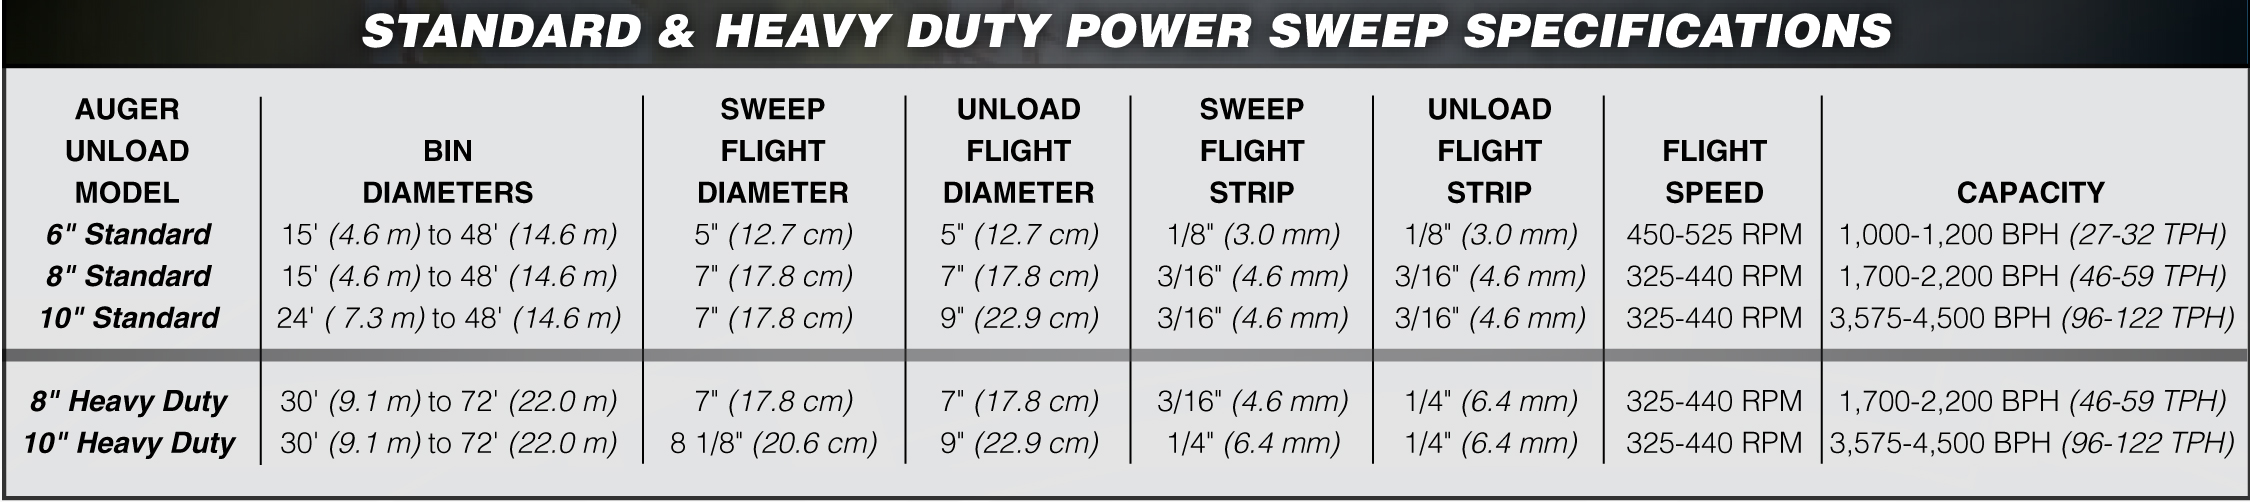 Hutchinson Standard & Heavy Duty Power Sweep Specifications